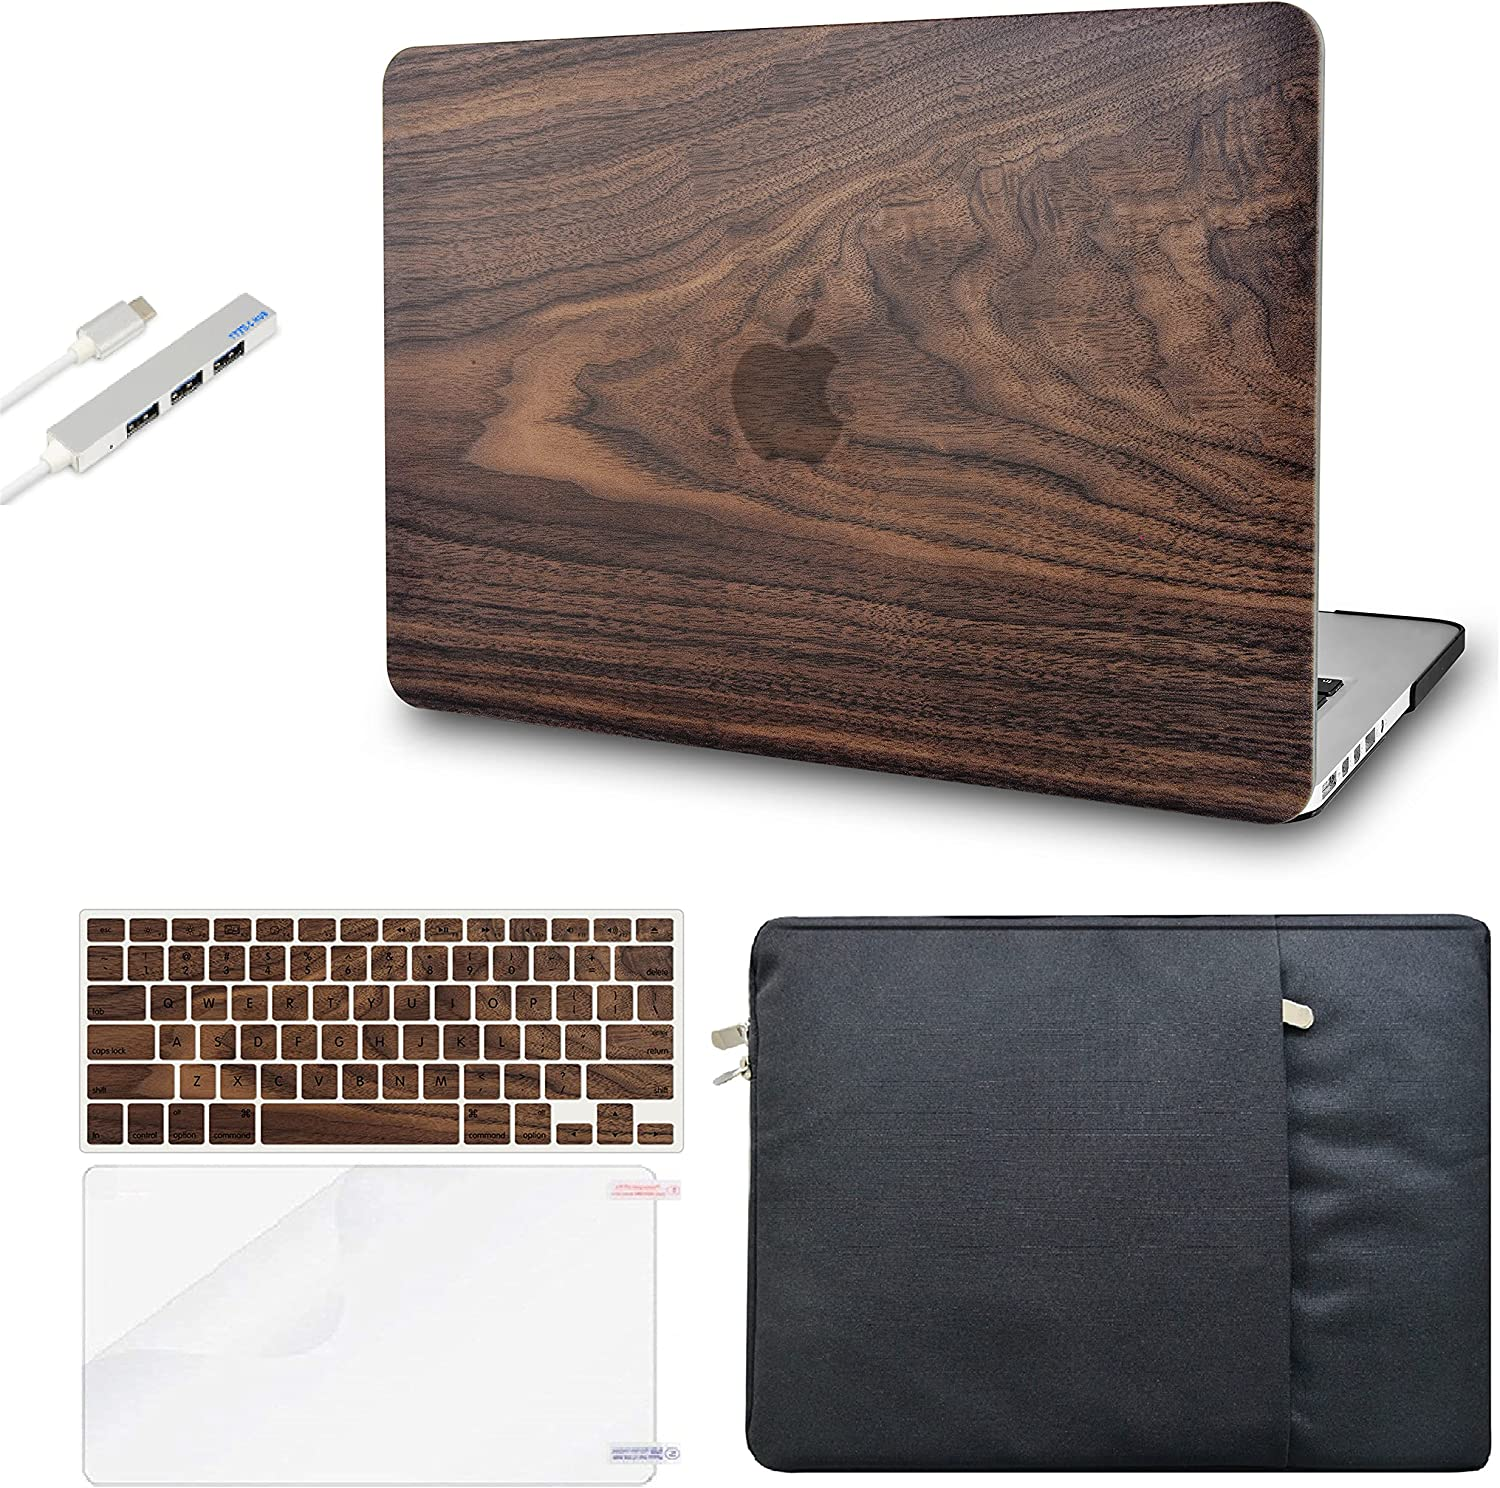 KECC Laptop Cheap mail order shopping Case for MacBook Pro Direct sale of manufacturer 13